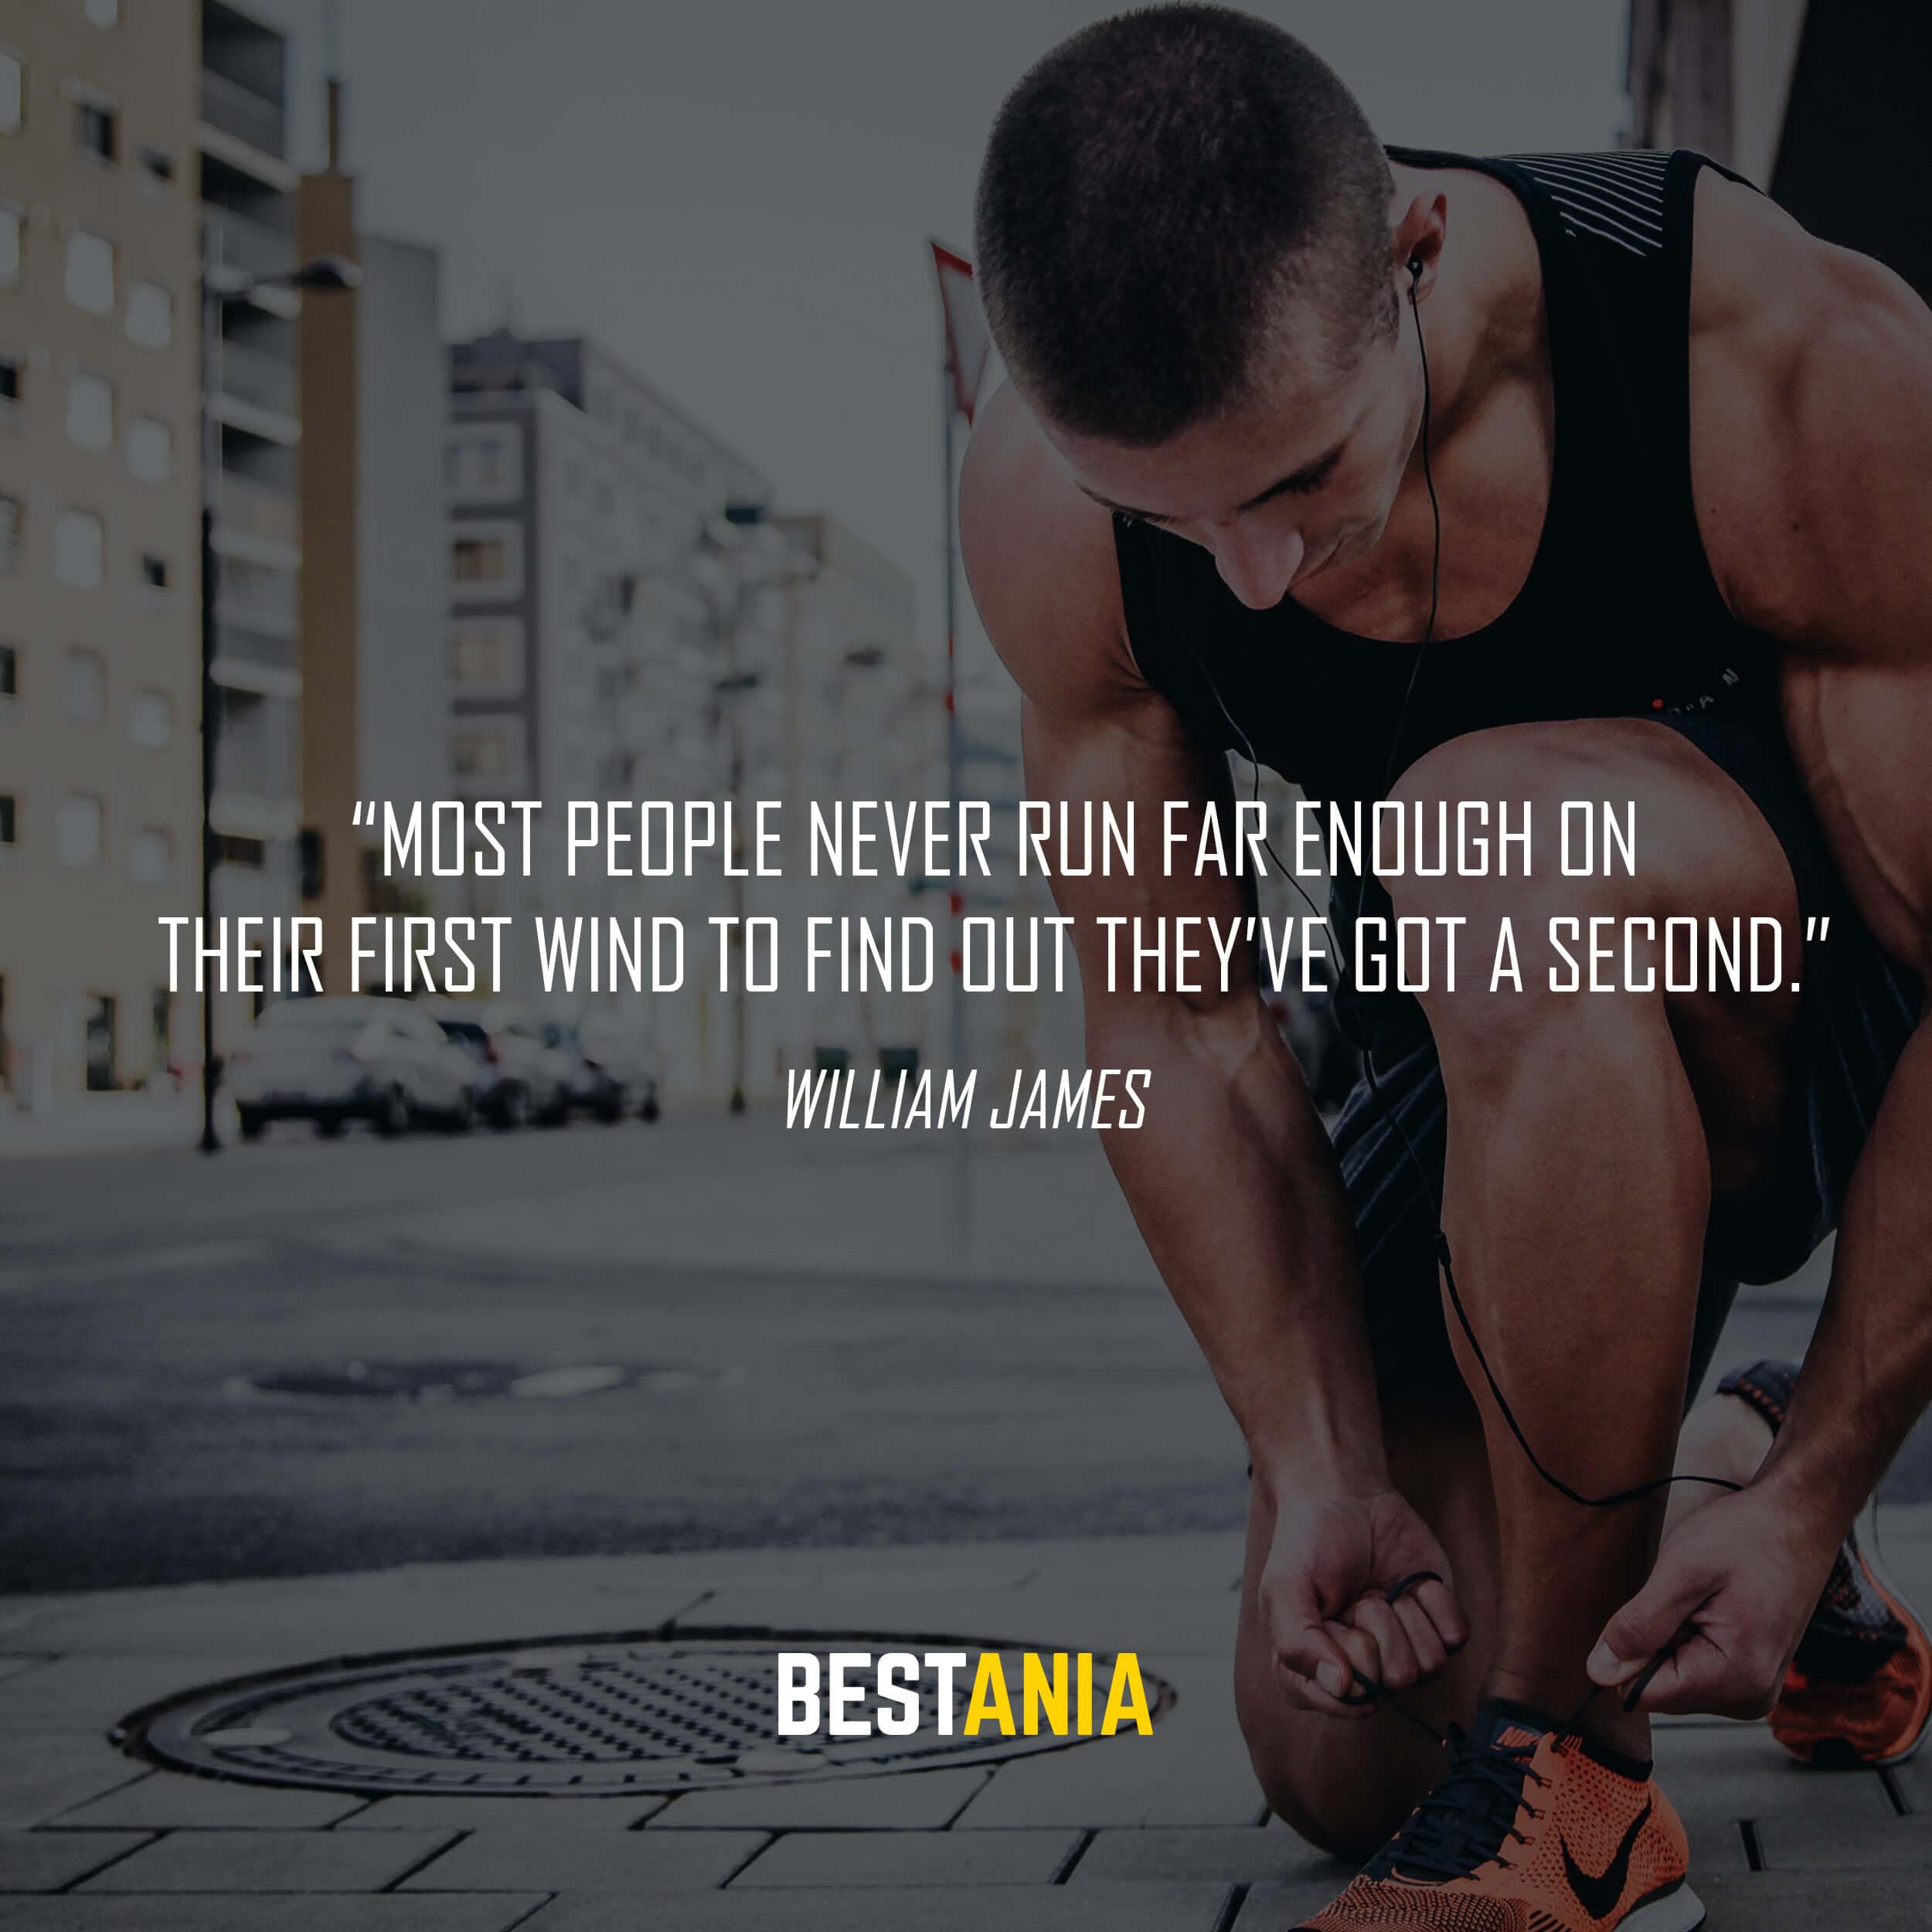 """Most people never run far enough on their first wind to find out they've got a second."" – William James"